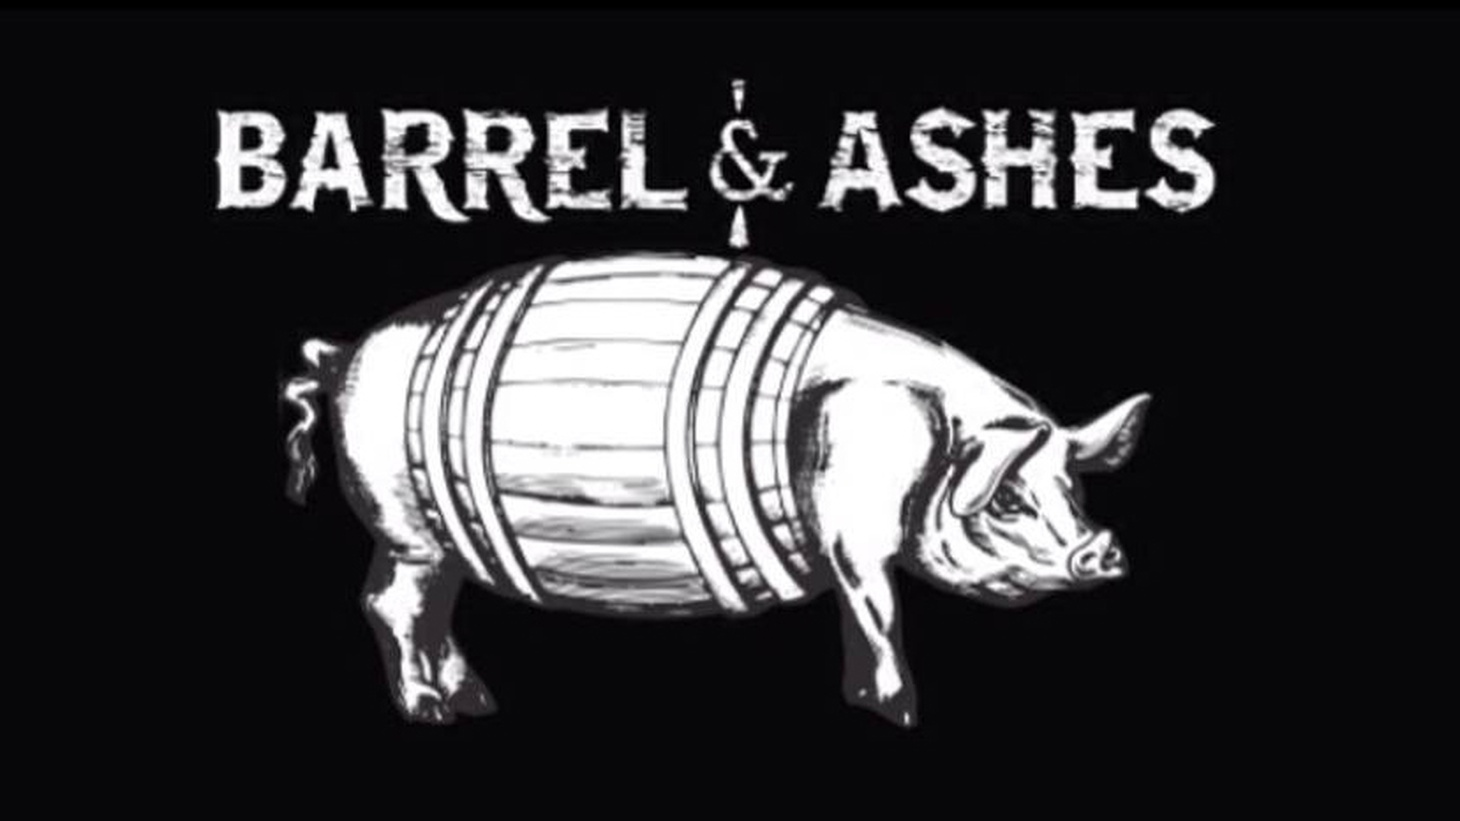 Jonathan Gold reviewsBarrel & Ashes, a Texas-style barbecue restaurant in Studio City.